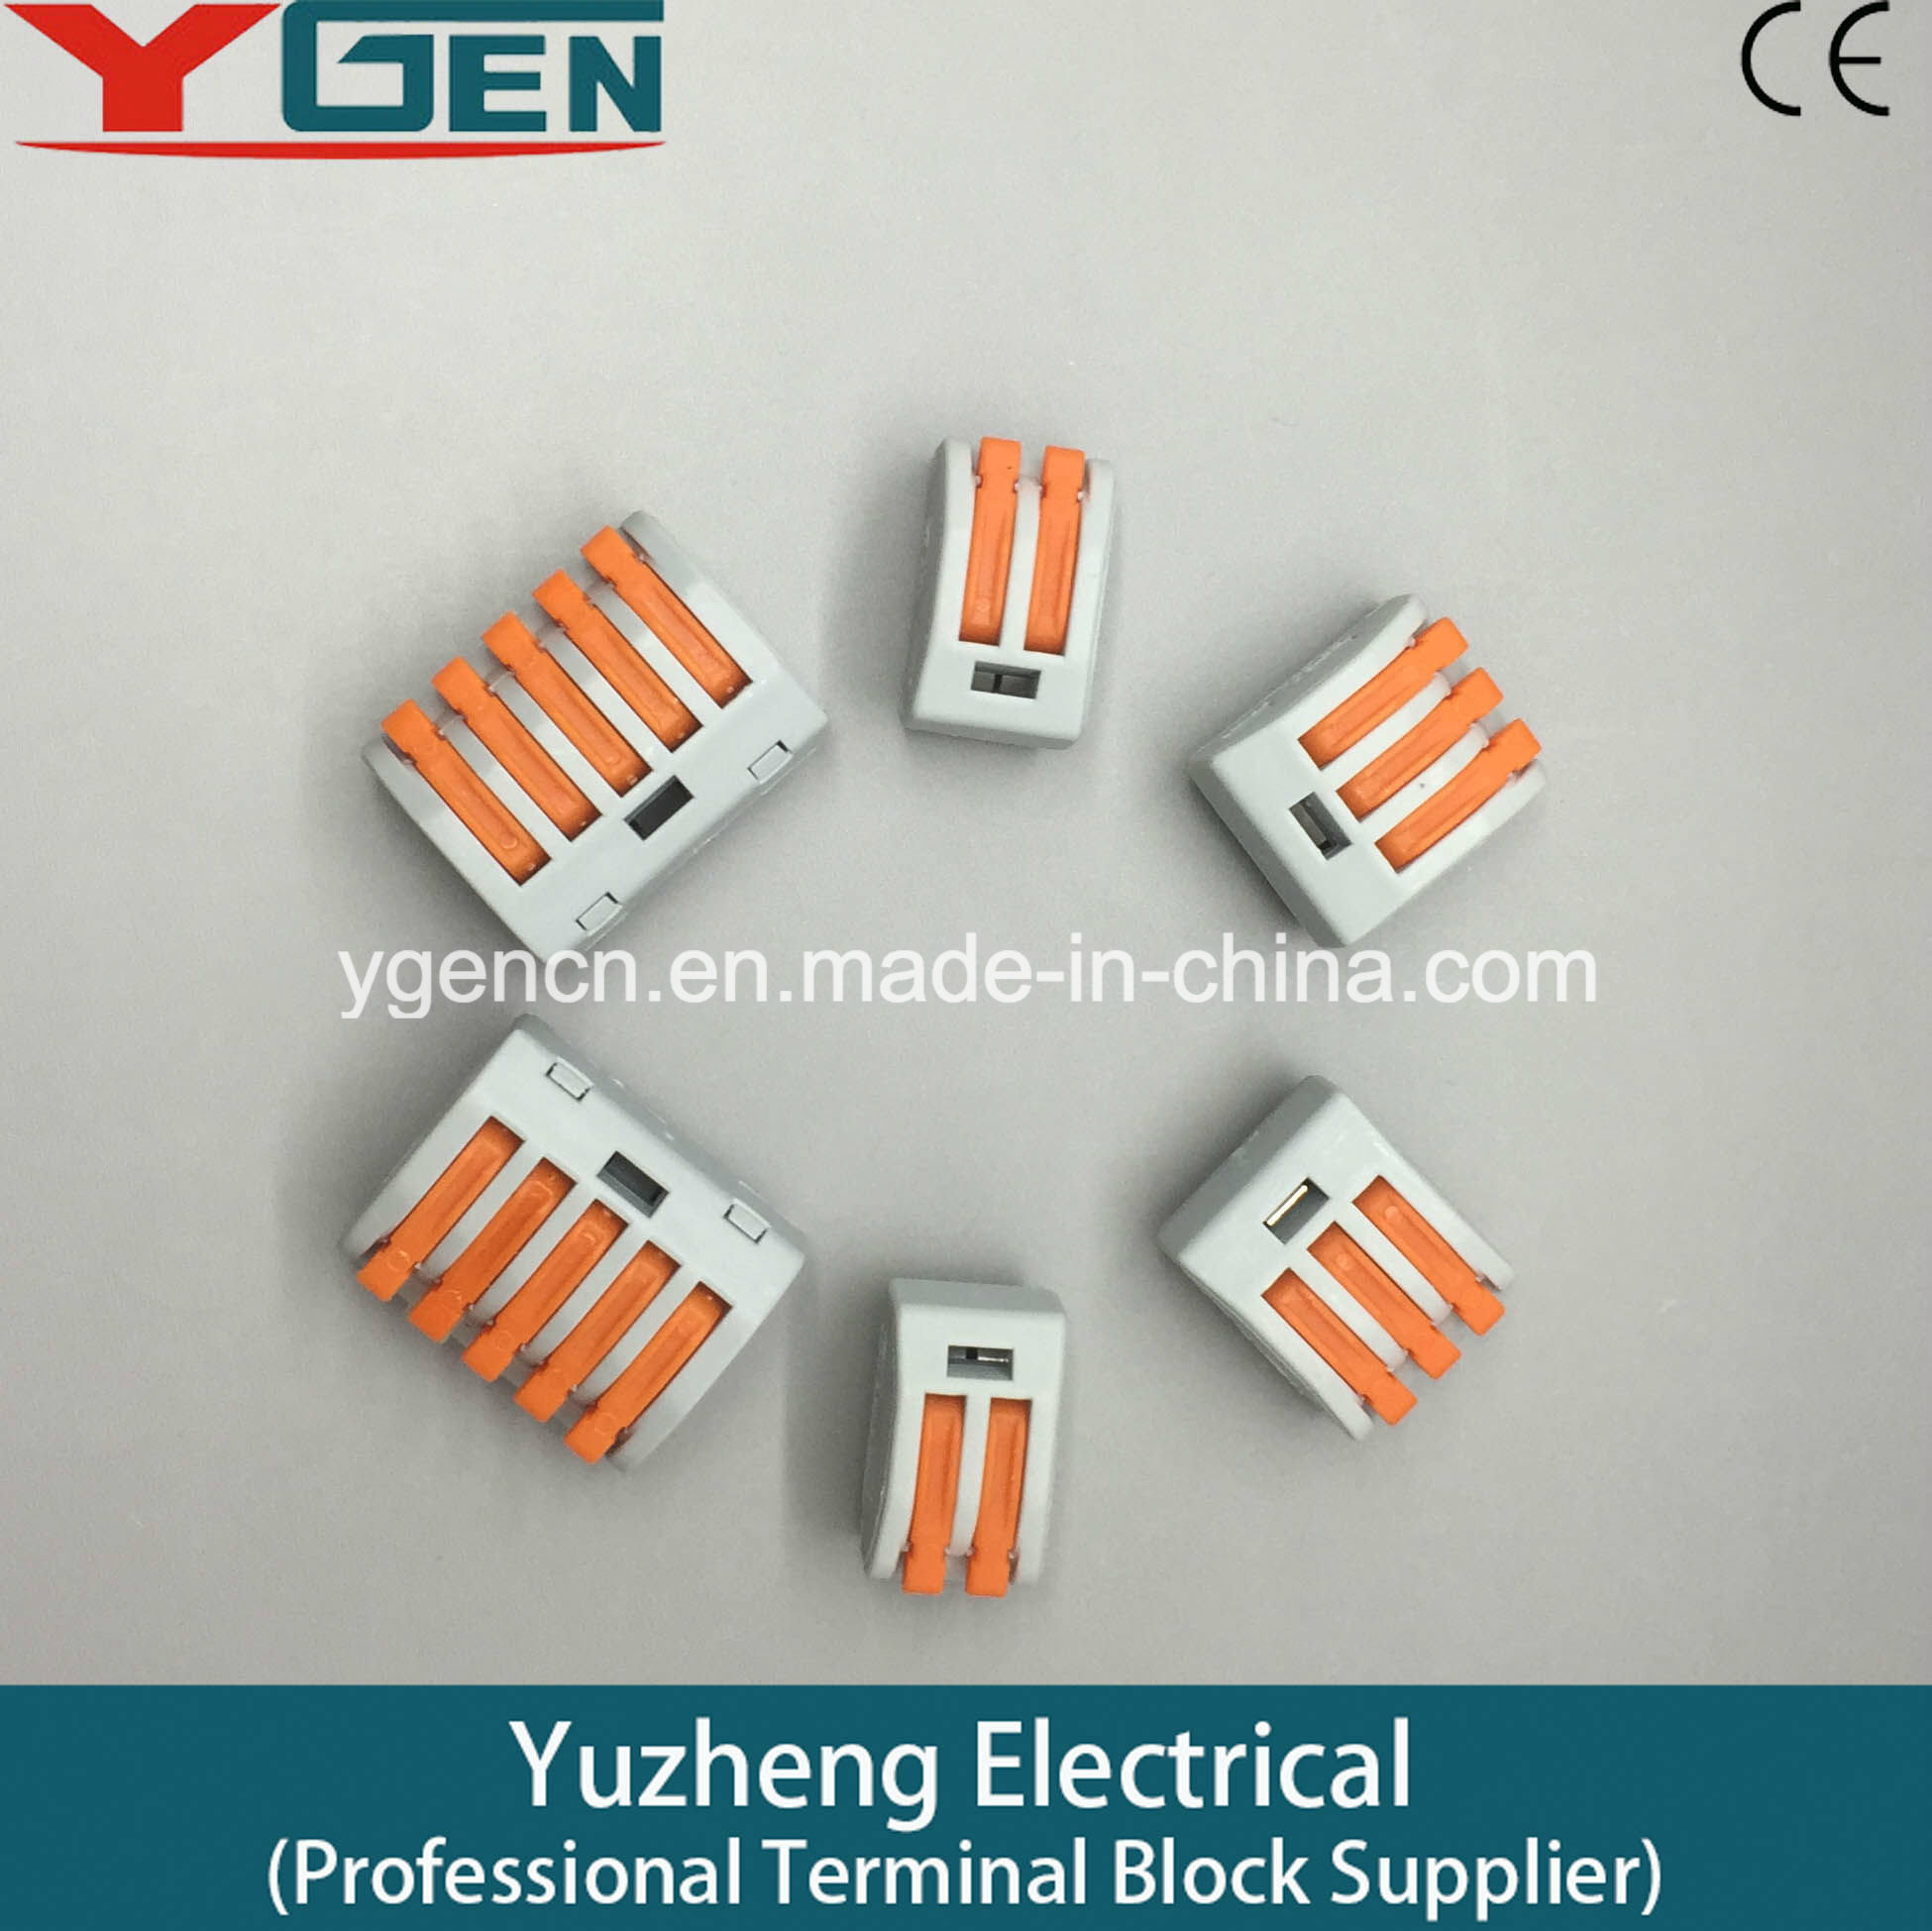 China Ce Wago 222 Series Compact Splicing Connector 2 Wire 412 Terminal Block Lever Cage Clamp